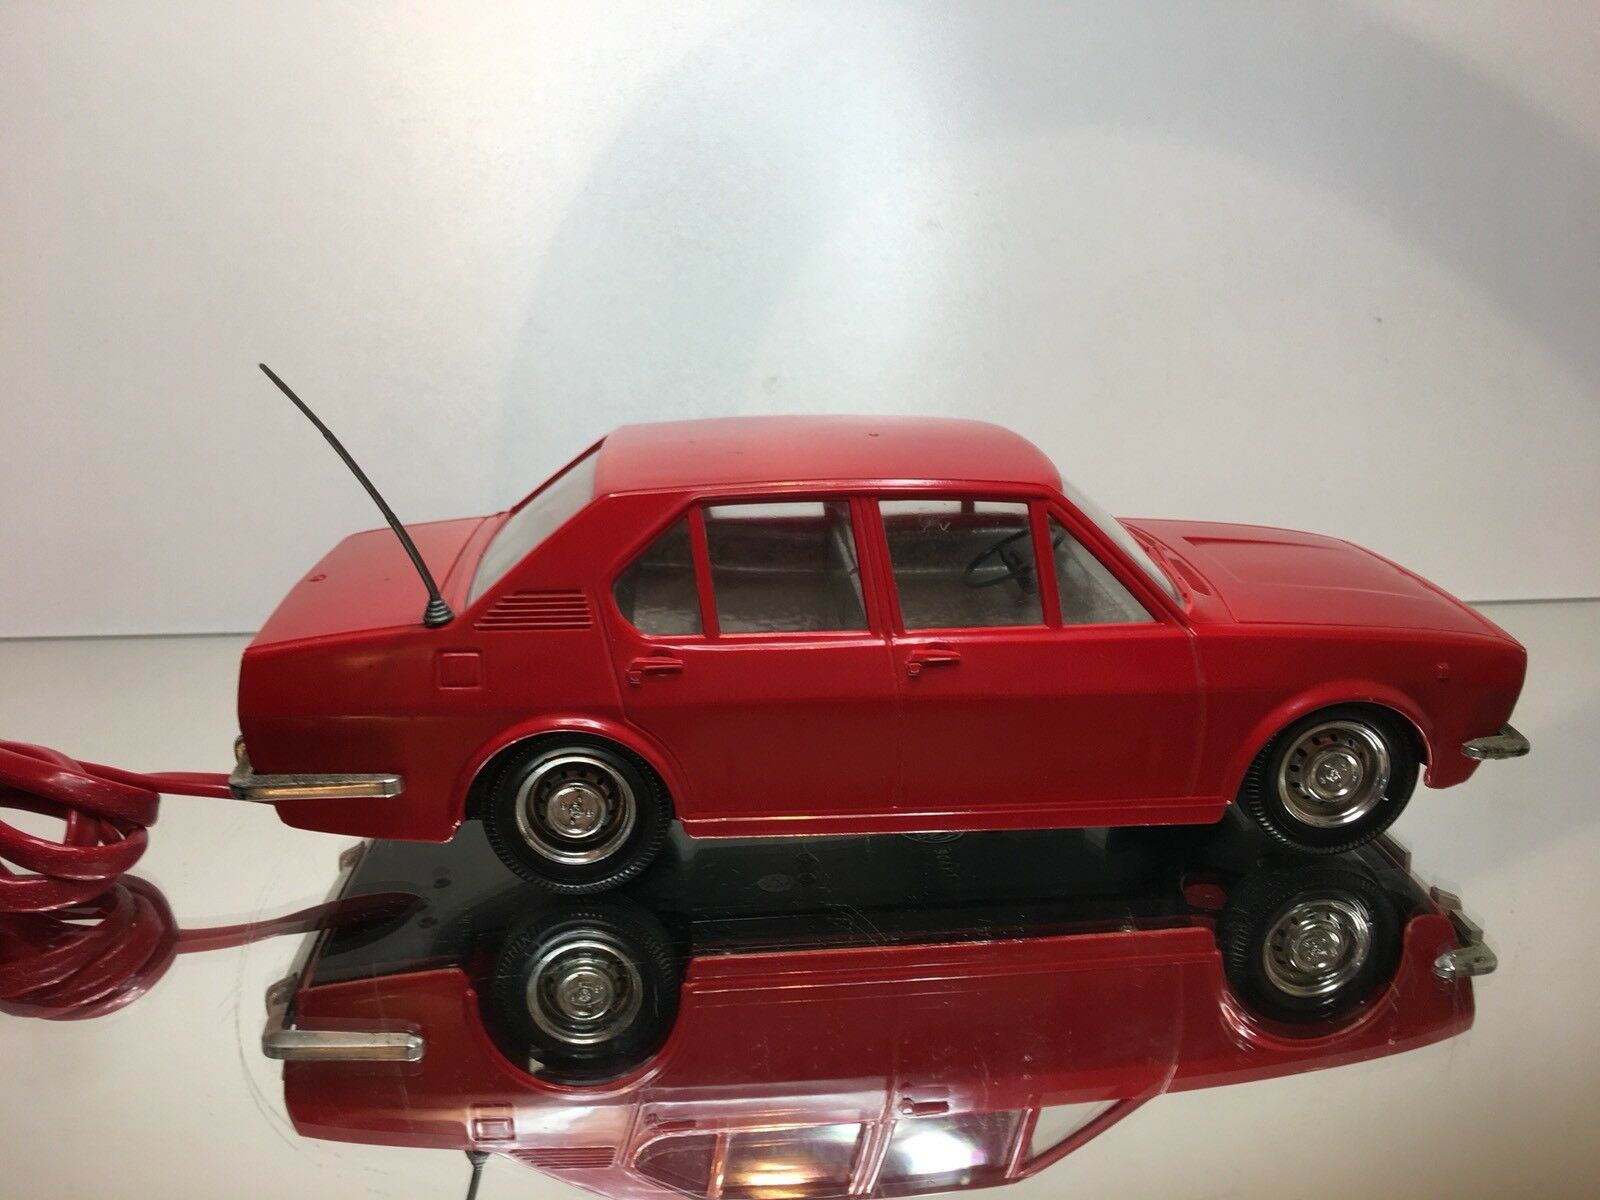 GIOCATTOLI MARCHESINI ALFA ROMEO ALFETTA - - - RC RED L26.5cm RARE - GOOD CONDITION 38a2df